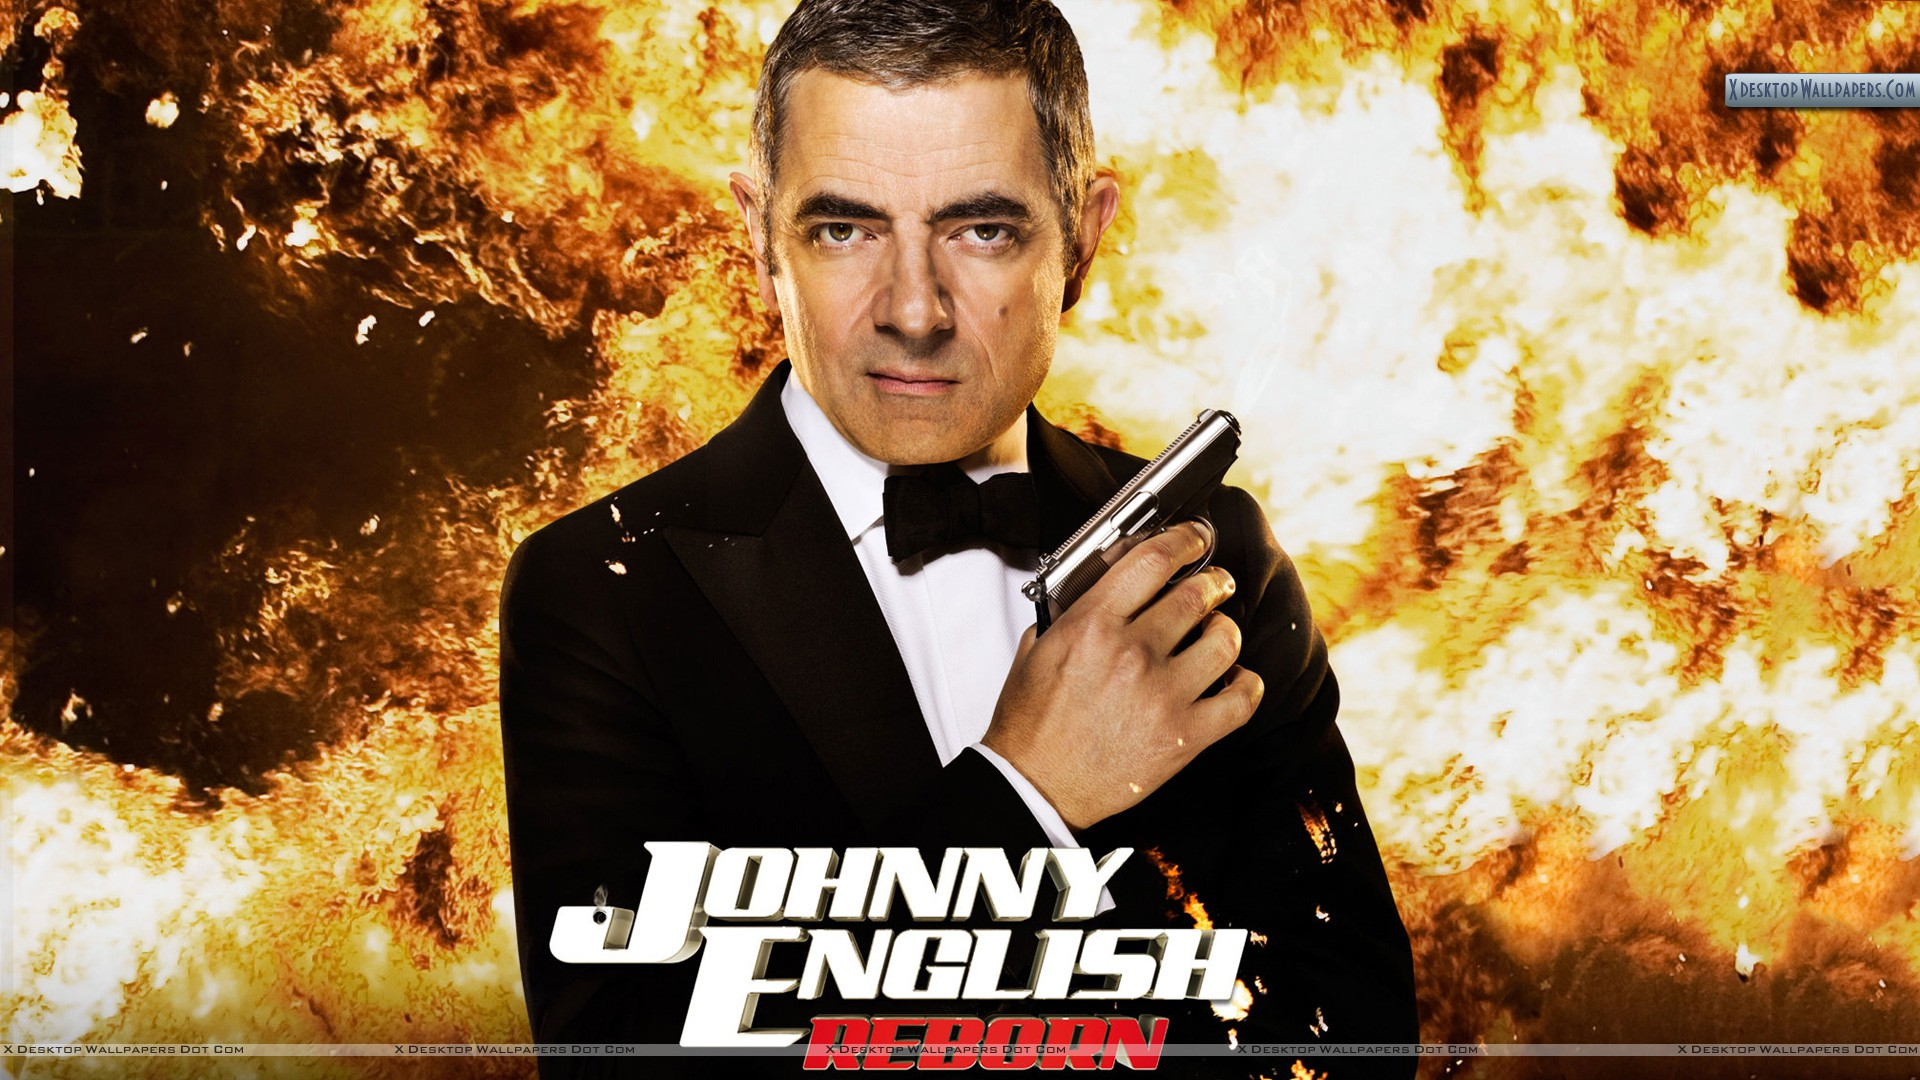 Top Gun Wallpaper Hd Johnny English Reborn Wallpapers Photos Amp Images In Hd